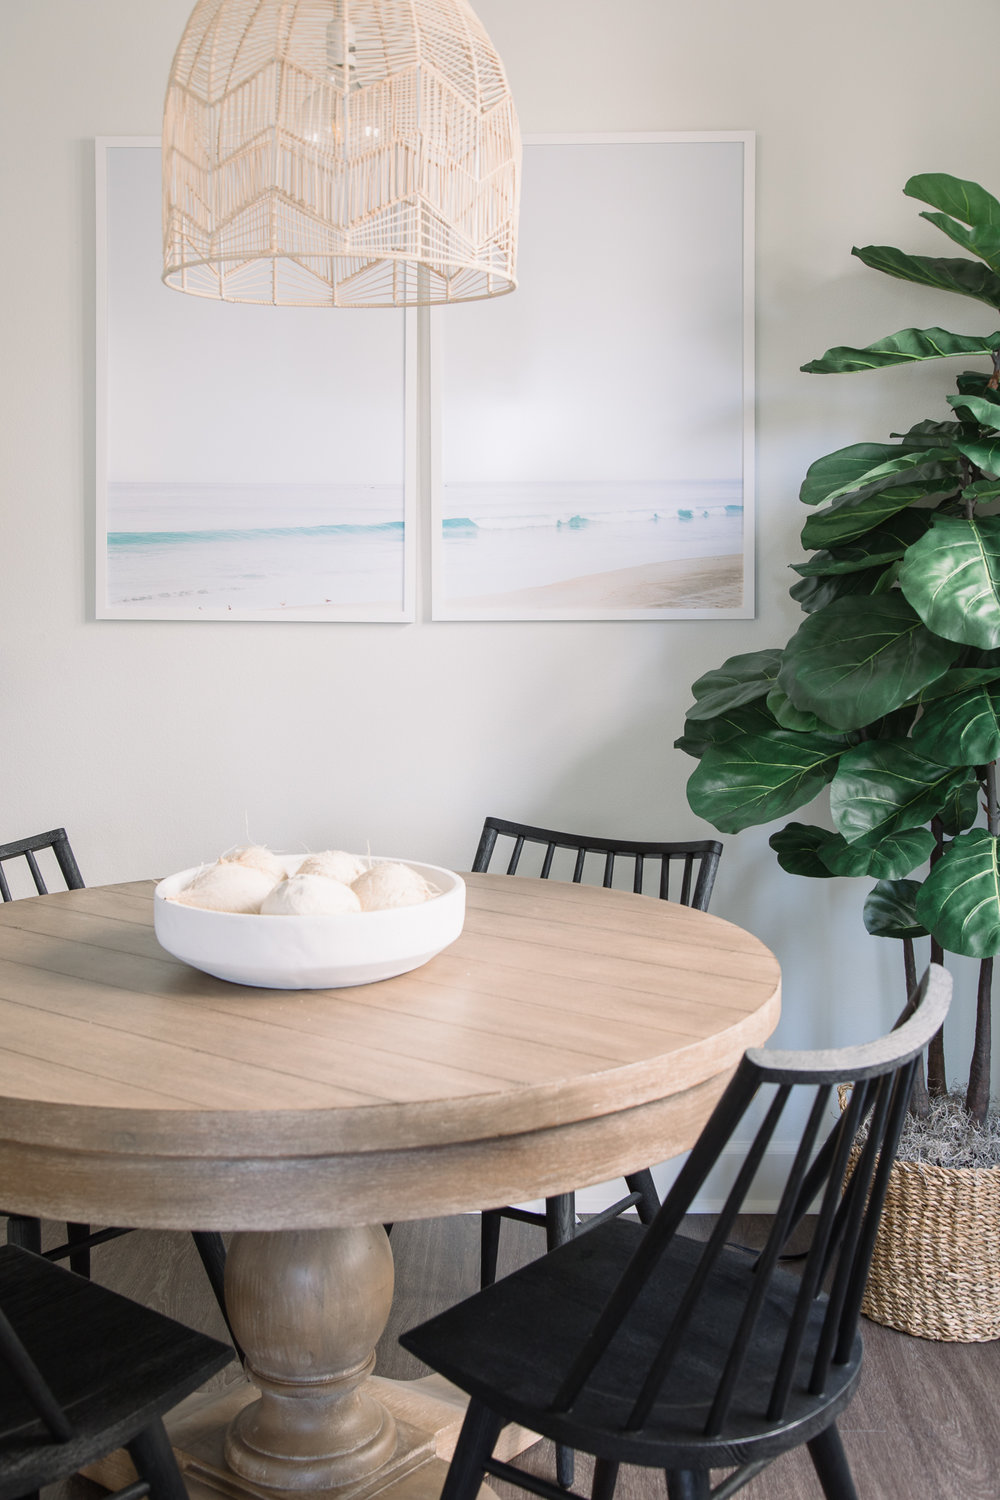 The white pendant light floats dreamlike above the table, anchored by delicate black chairs.